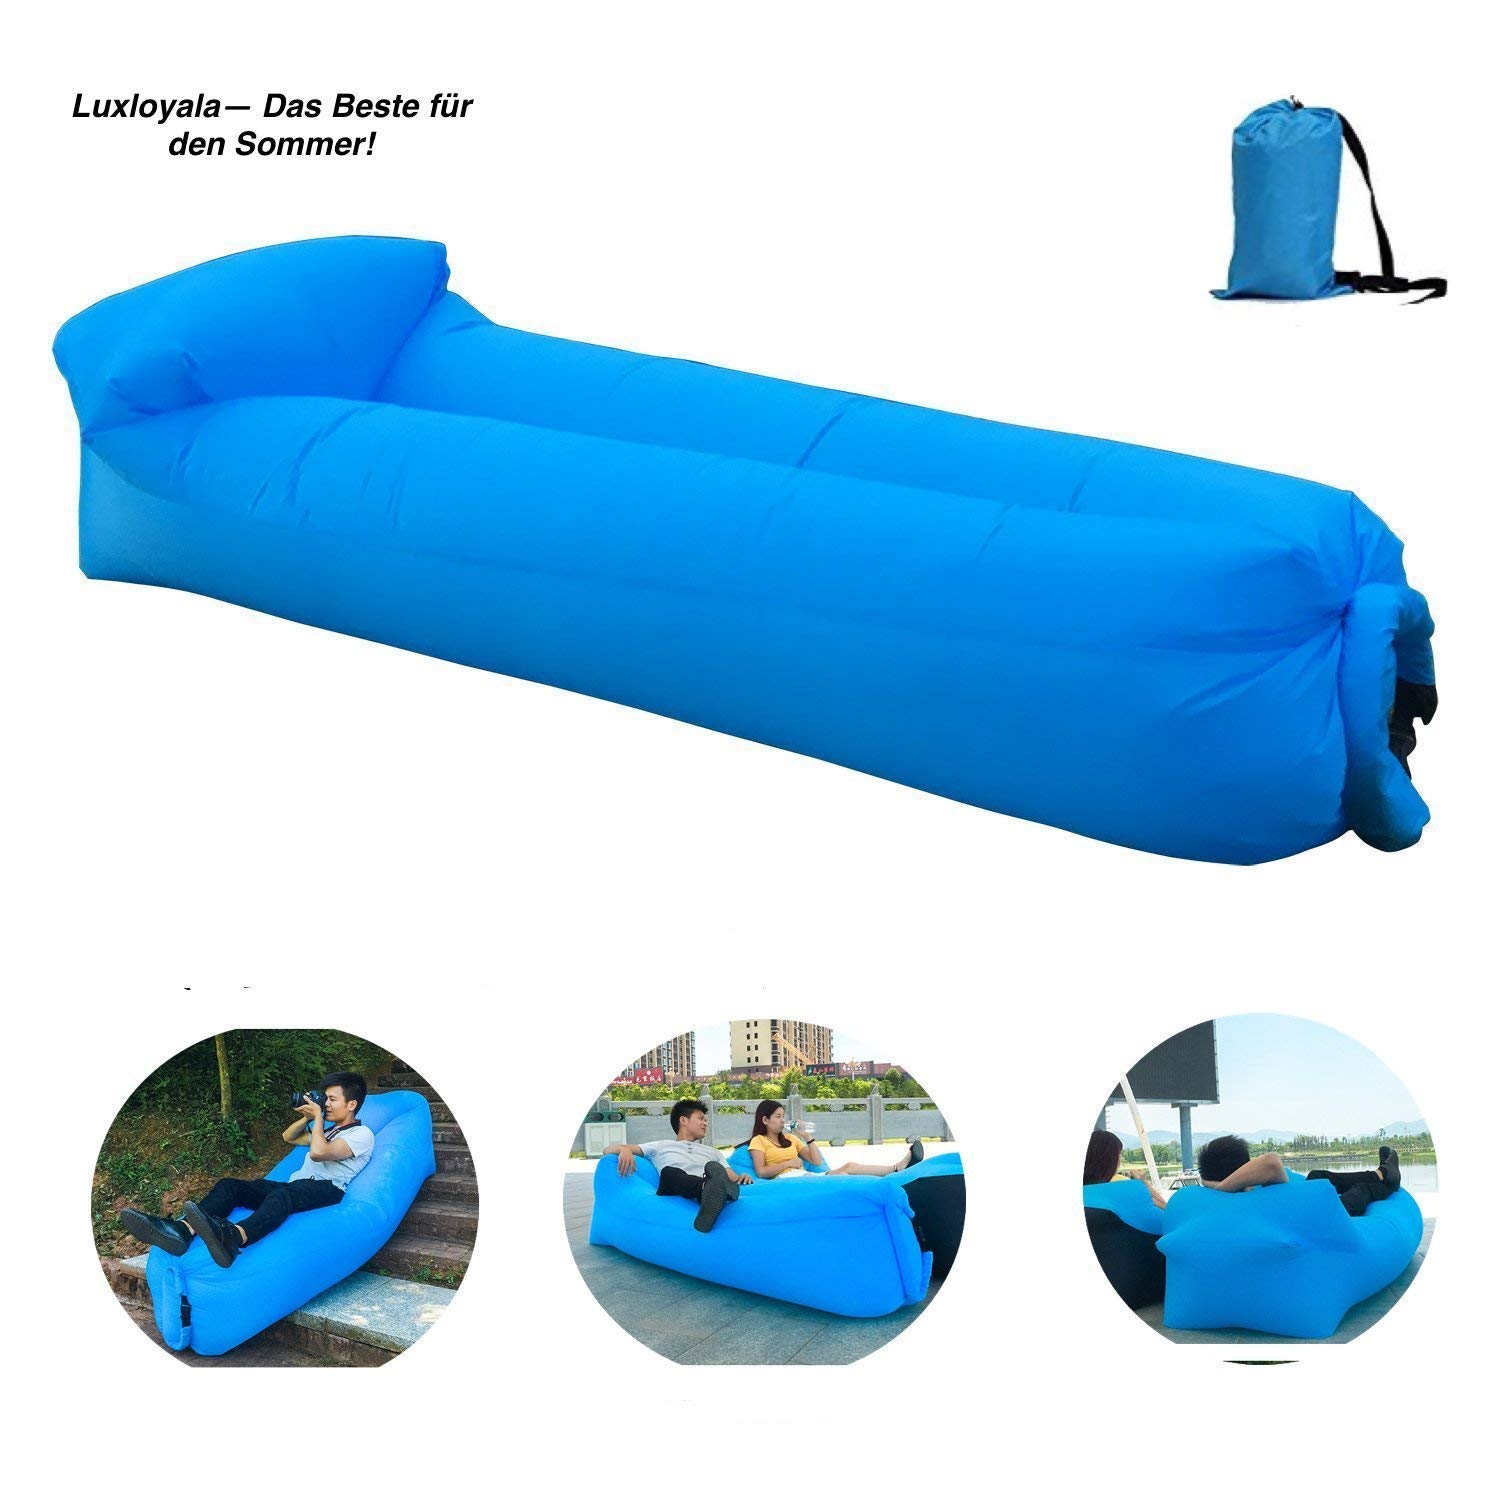 Luxloyala Sofá Inflable, Air Coach Sofá Inflable Impermeable de Alta Calidad Superior, sofá del Aire, Aire ocioso, sofá del Aire (Azul): Amazon.es: Deportes ...